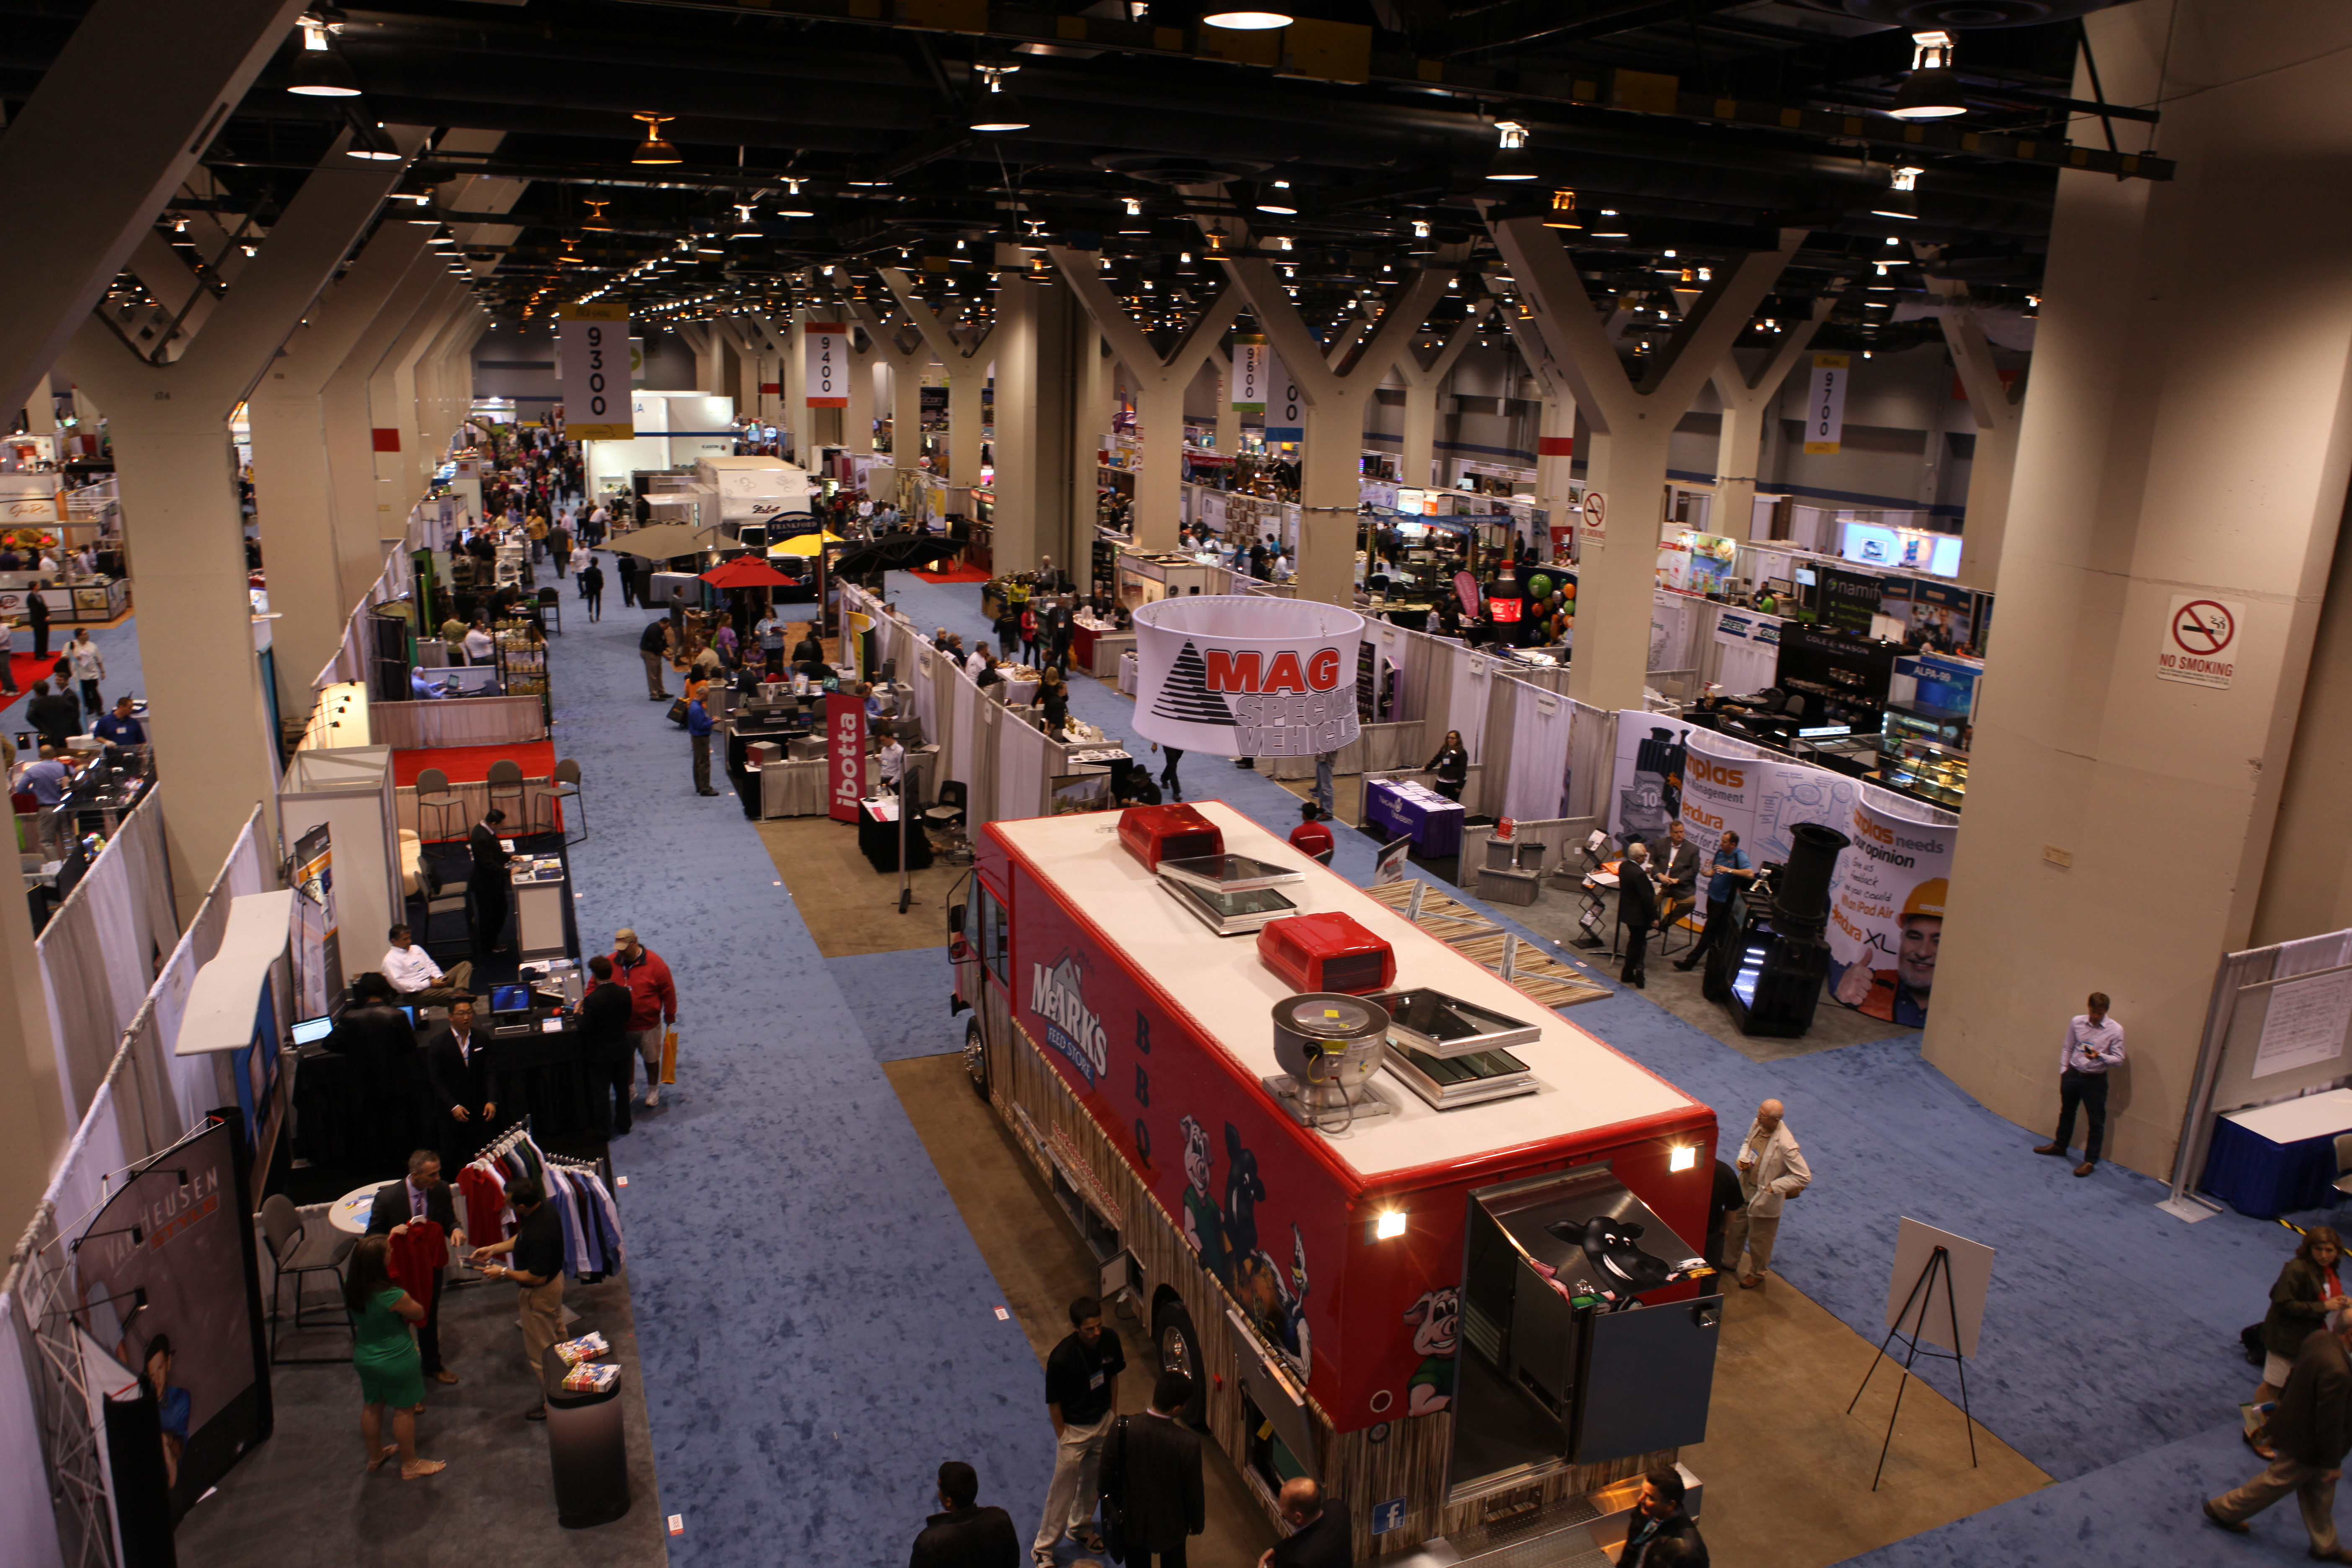 National Restaurant Association was right to boot woman from trade show